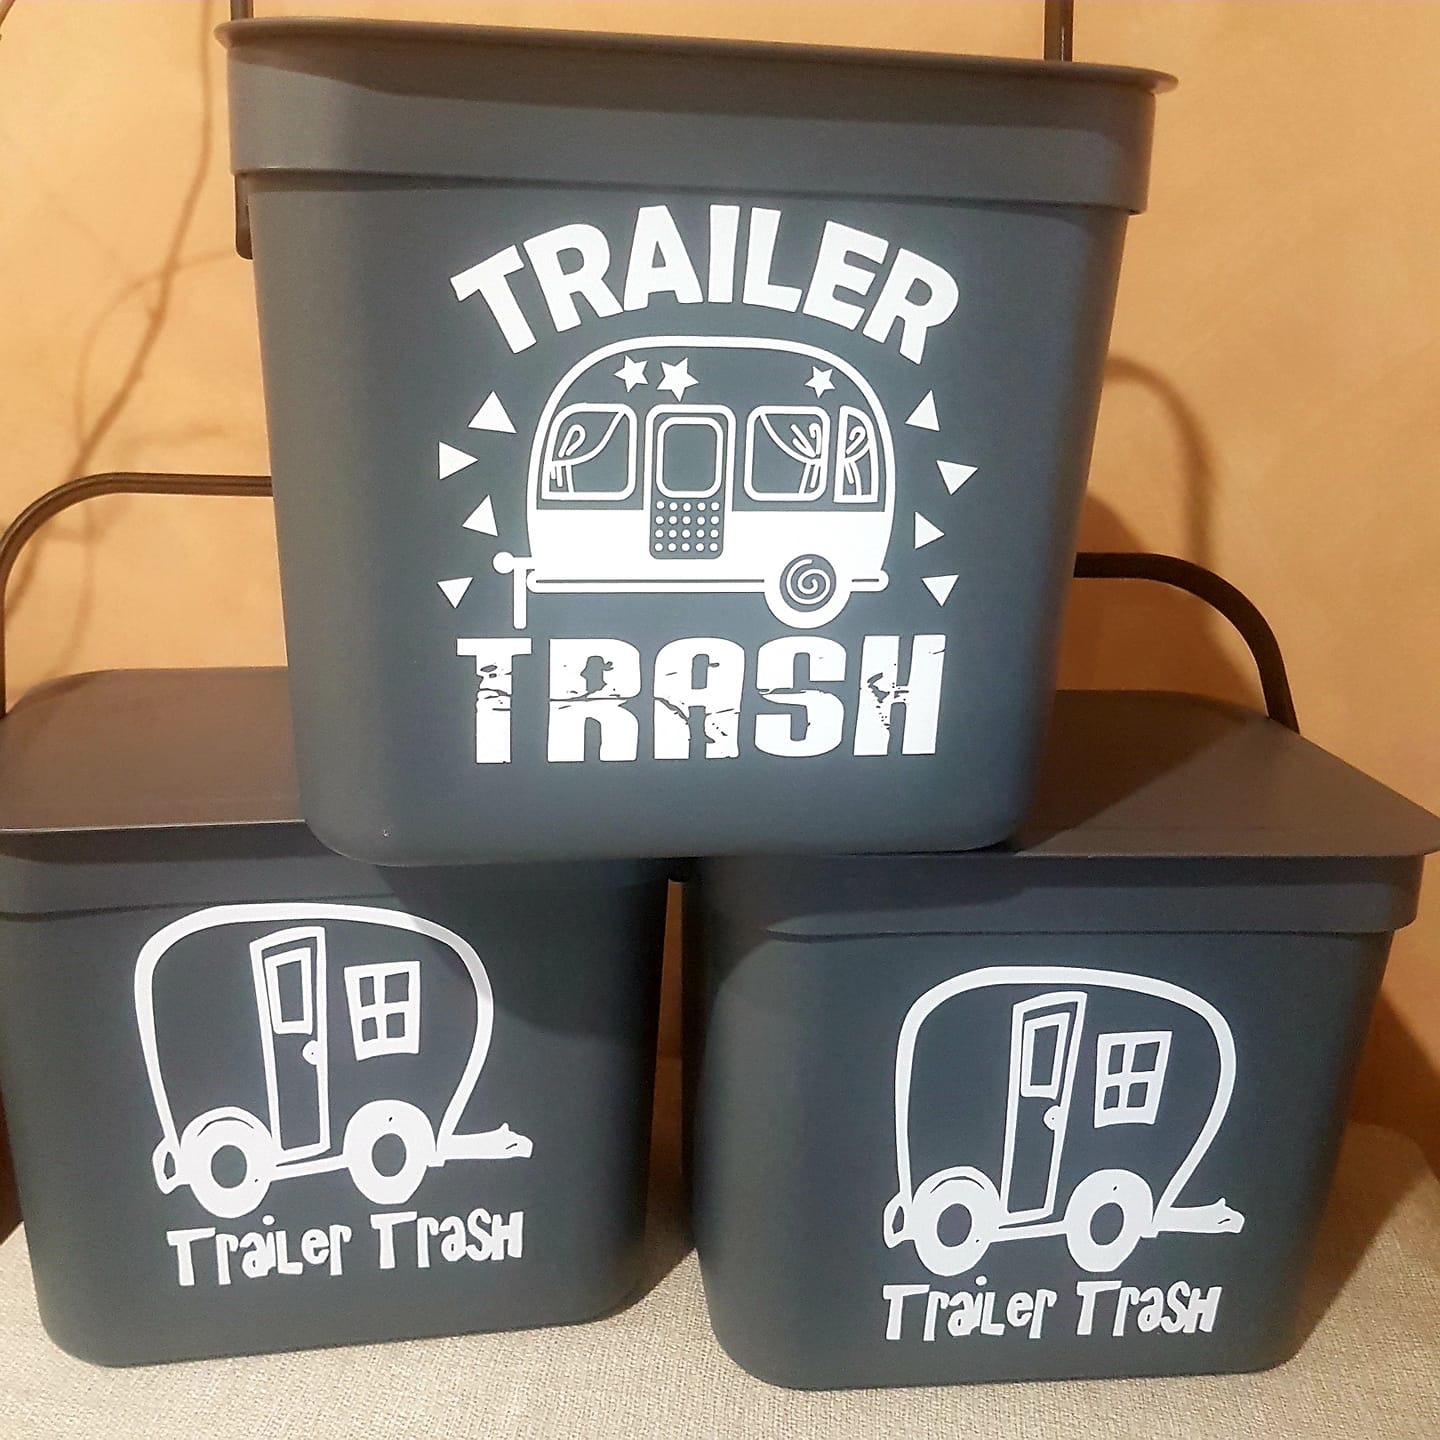 Trailer trash bins